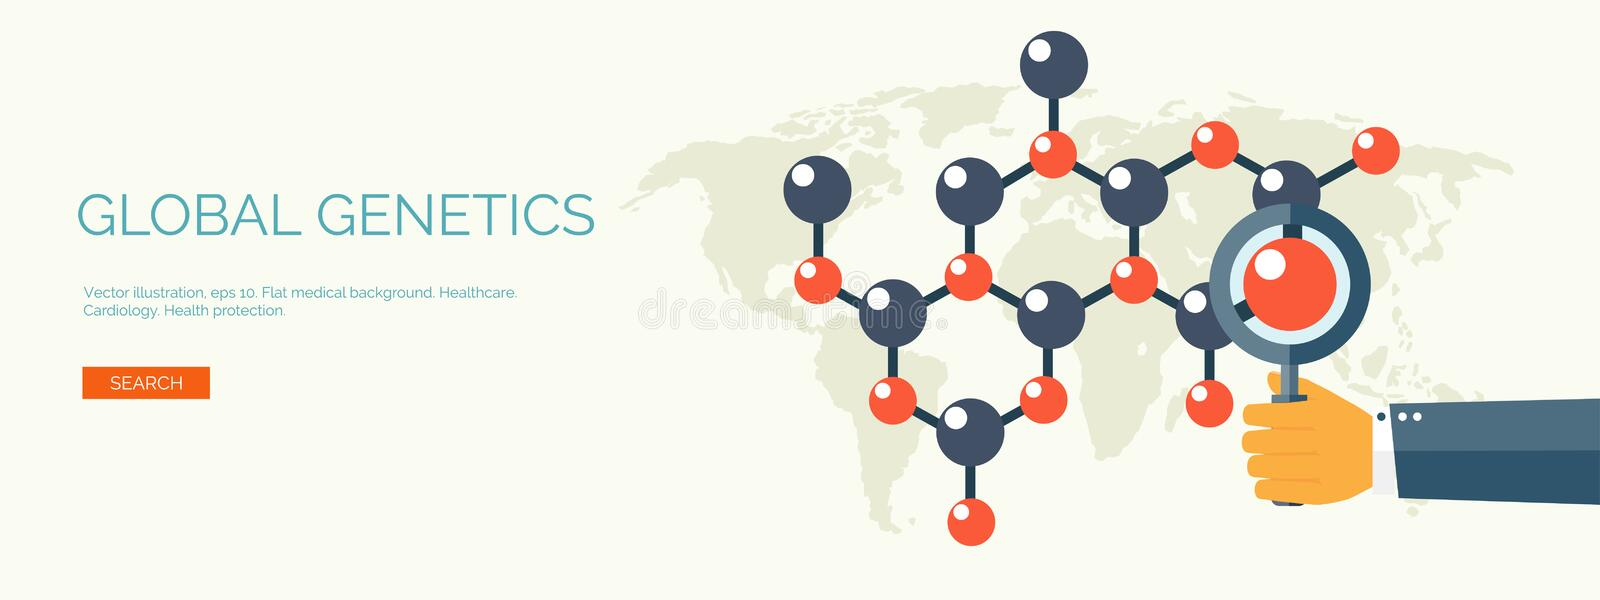 Vector illustration. Flat medical background. Health care first aid, research cardiology. Medicinestudy. Chemical stock illustration